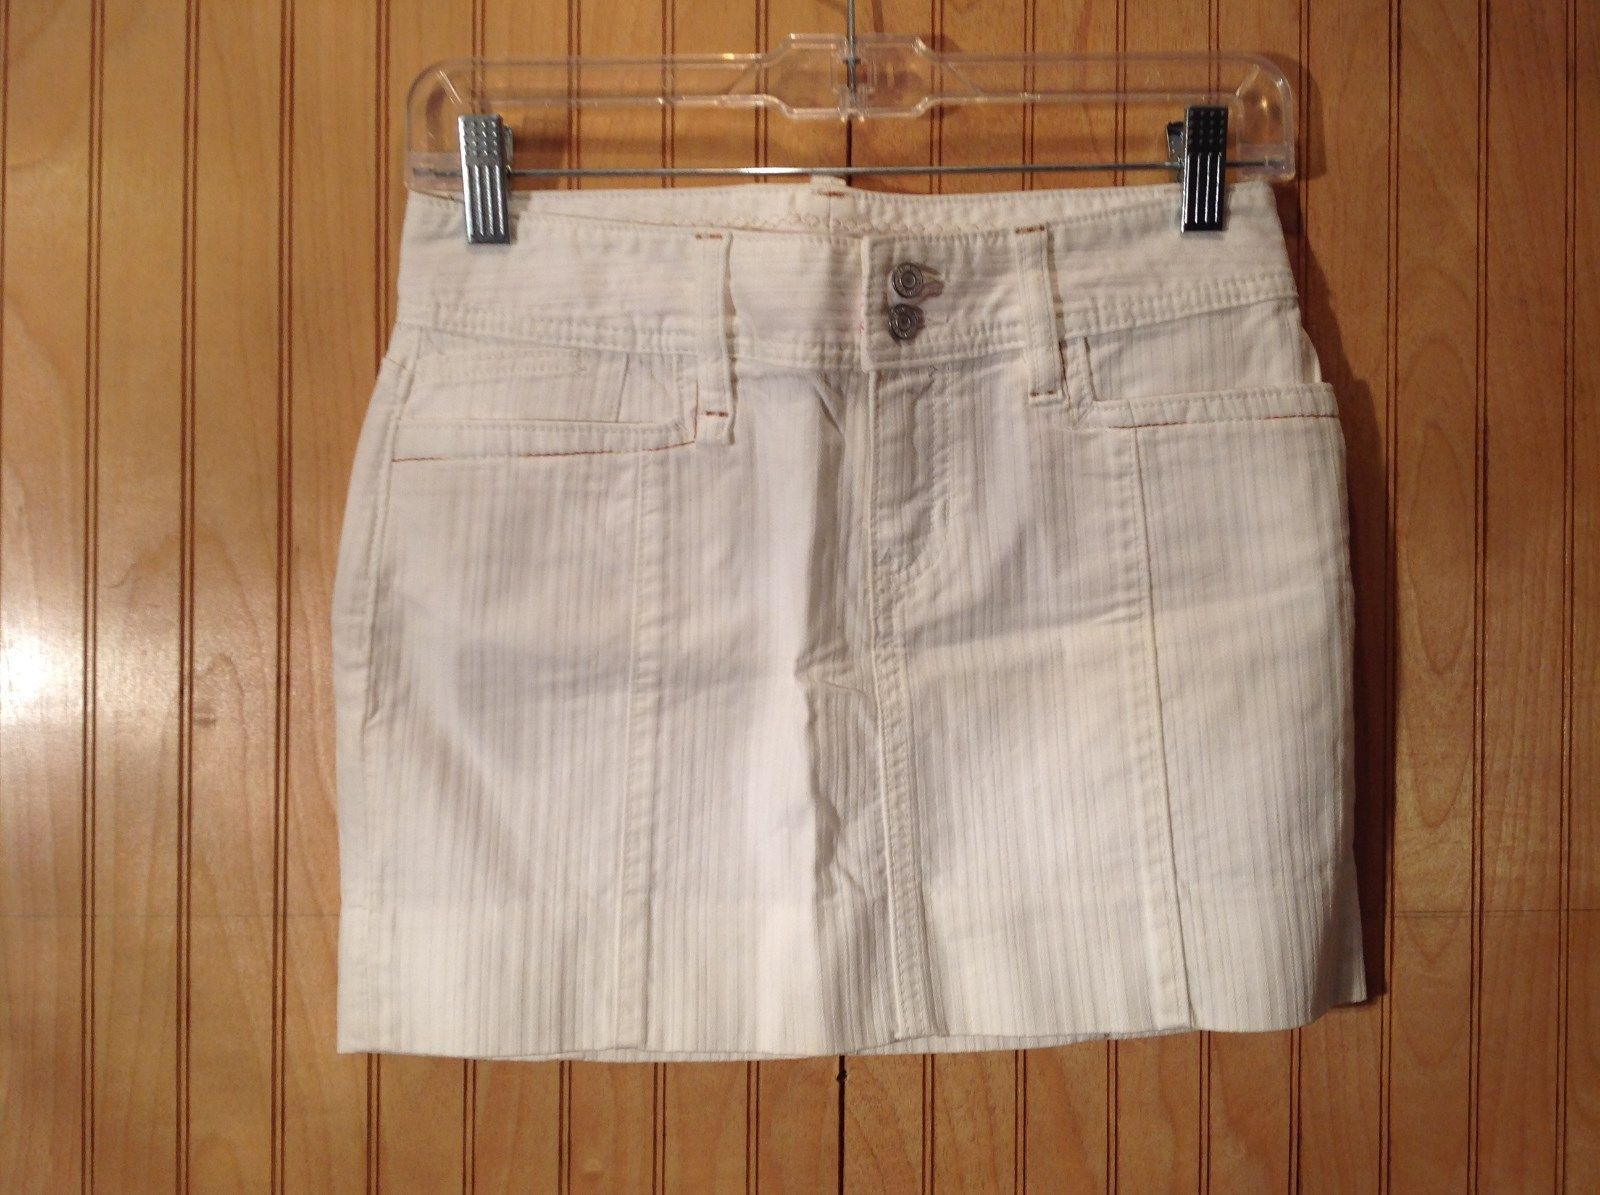 White Short GAP Skirt Zipper Two Button Closure Two Front Pockets Size 0